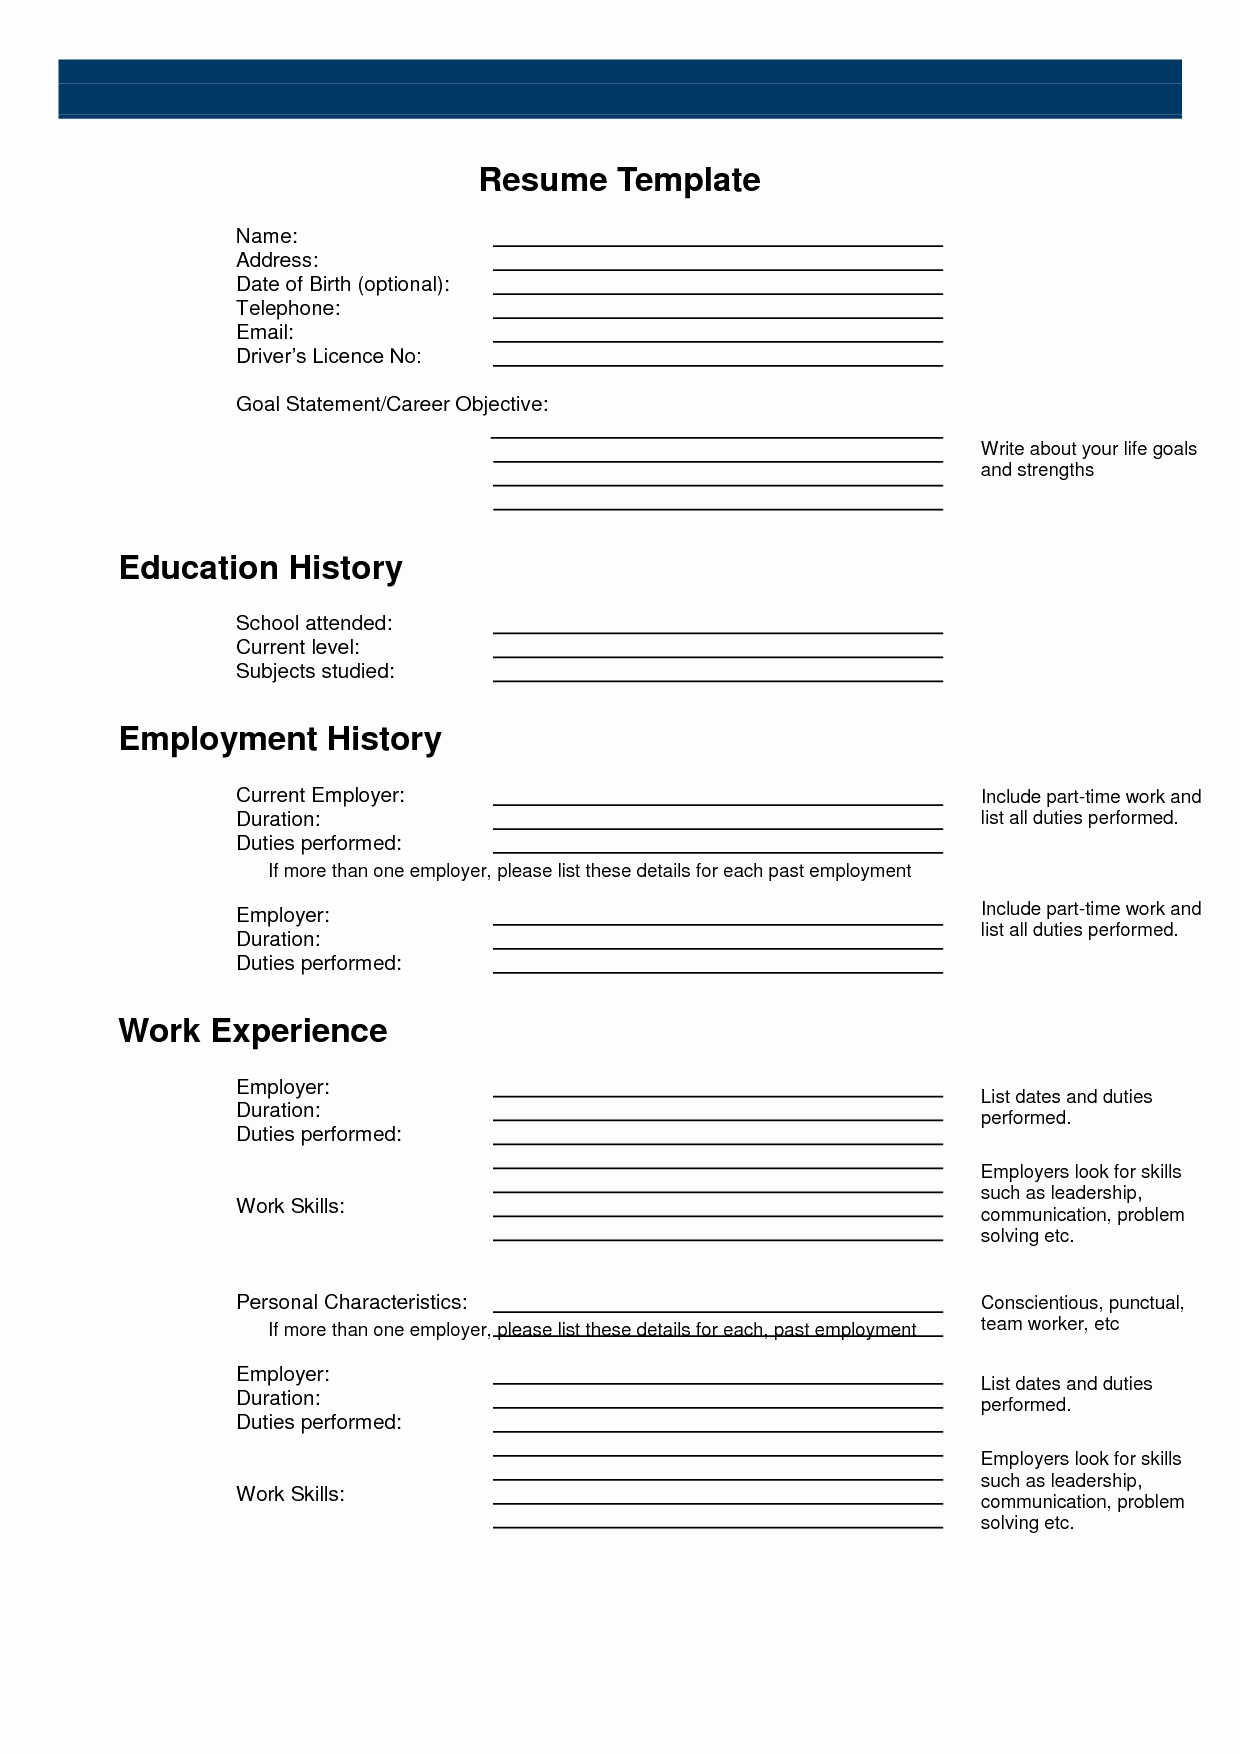 What Employers Look for In A Resume - Fill In Resume Template Awesome Resume Sample for Job From I Pinimg